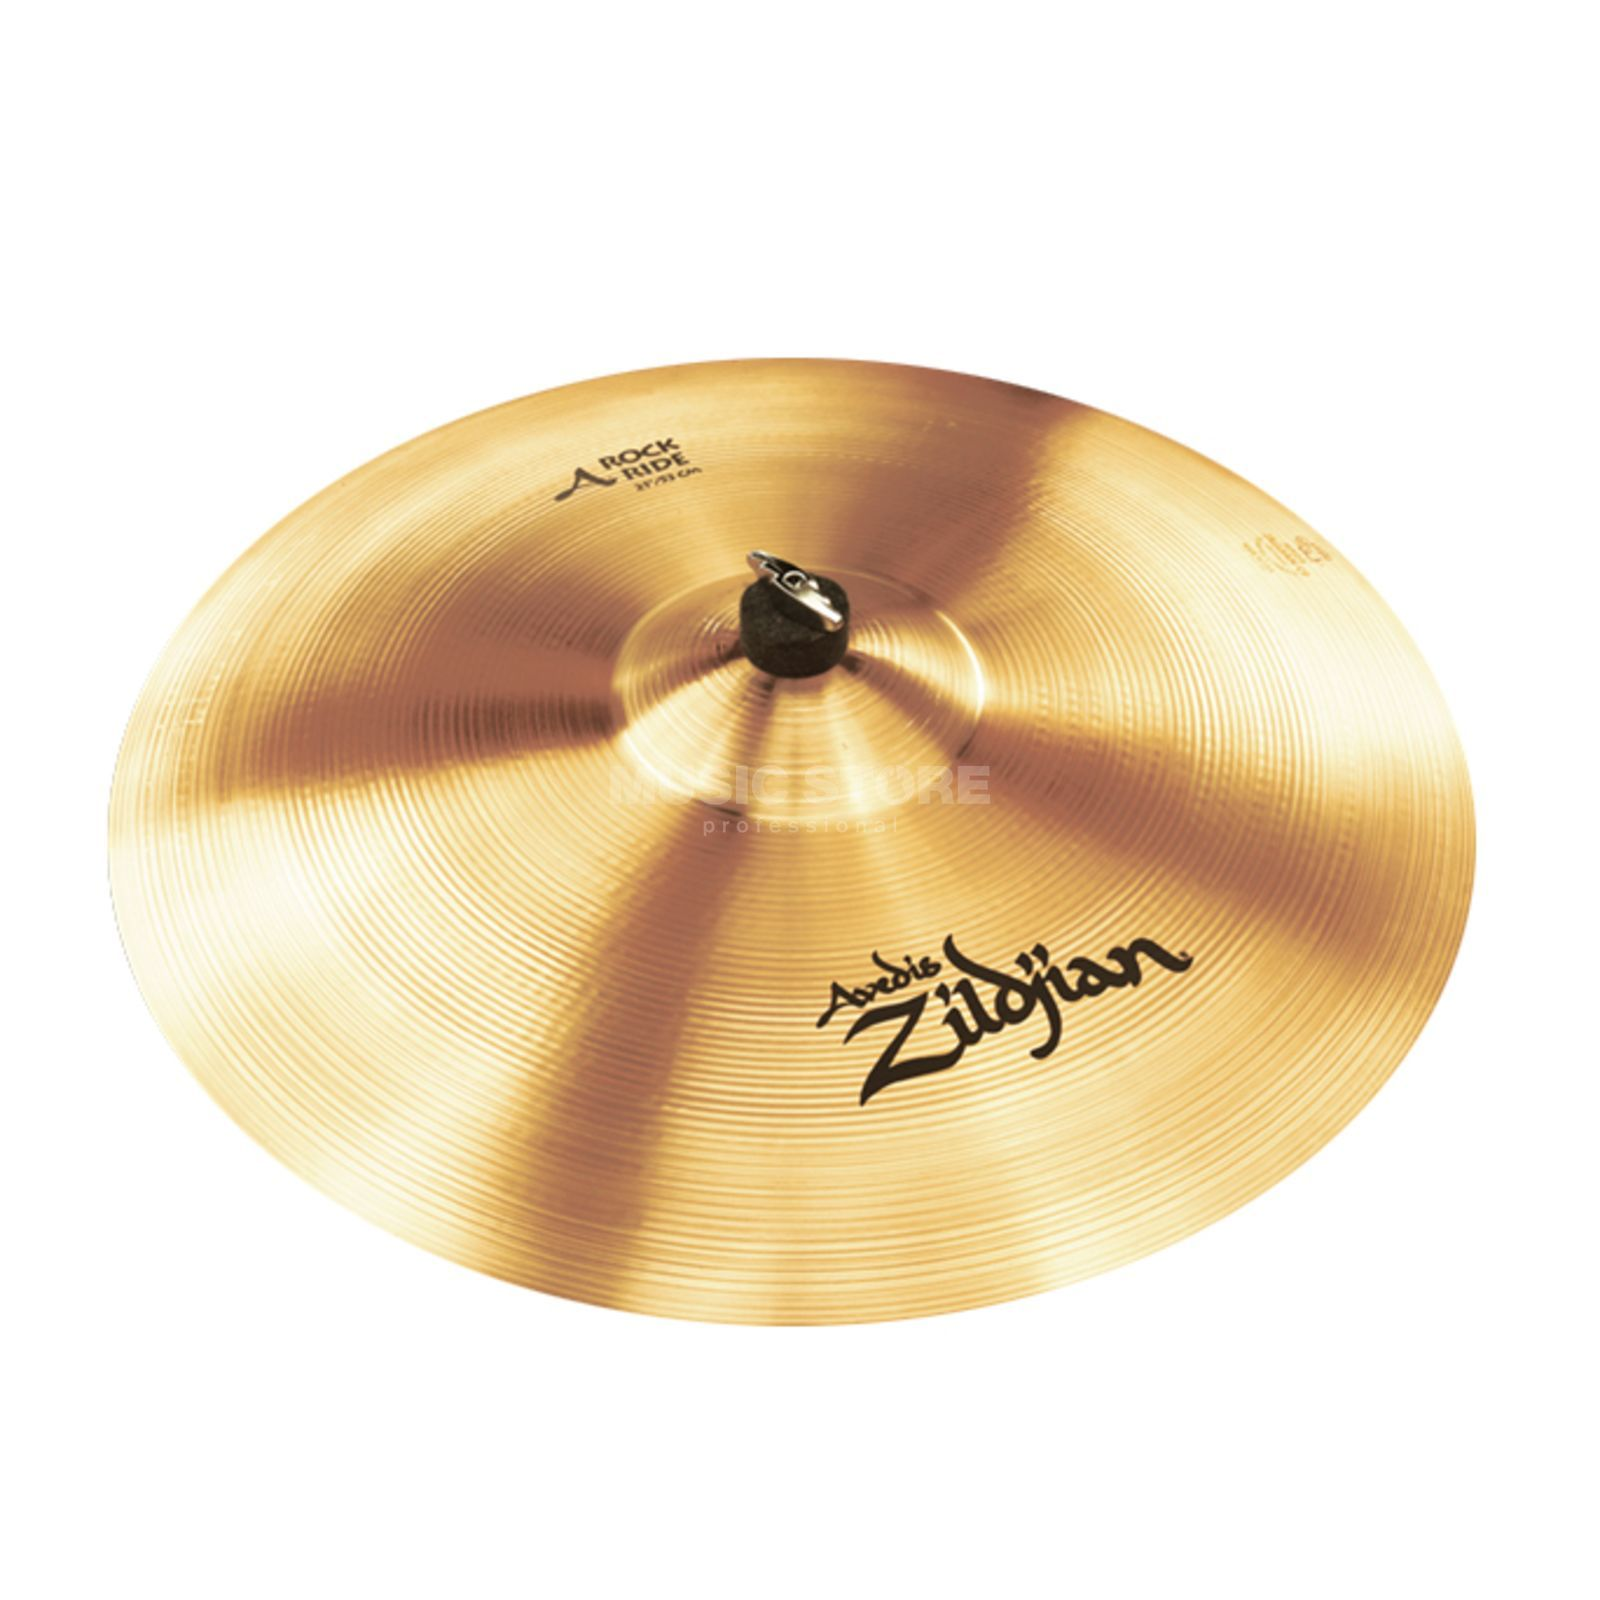 "Zildjian A' Zildjian Rock Ride 21"", Traditional Finish Product Image"